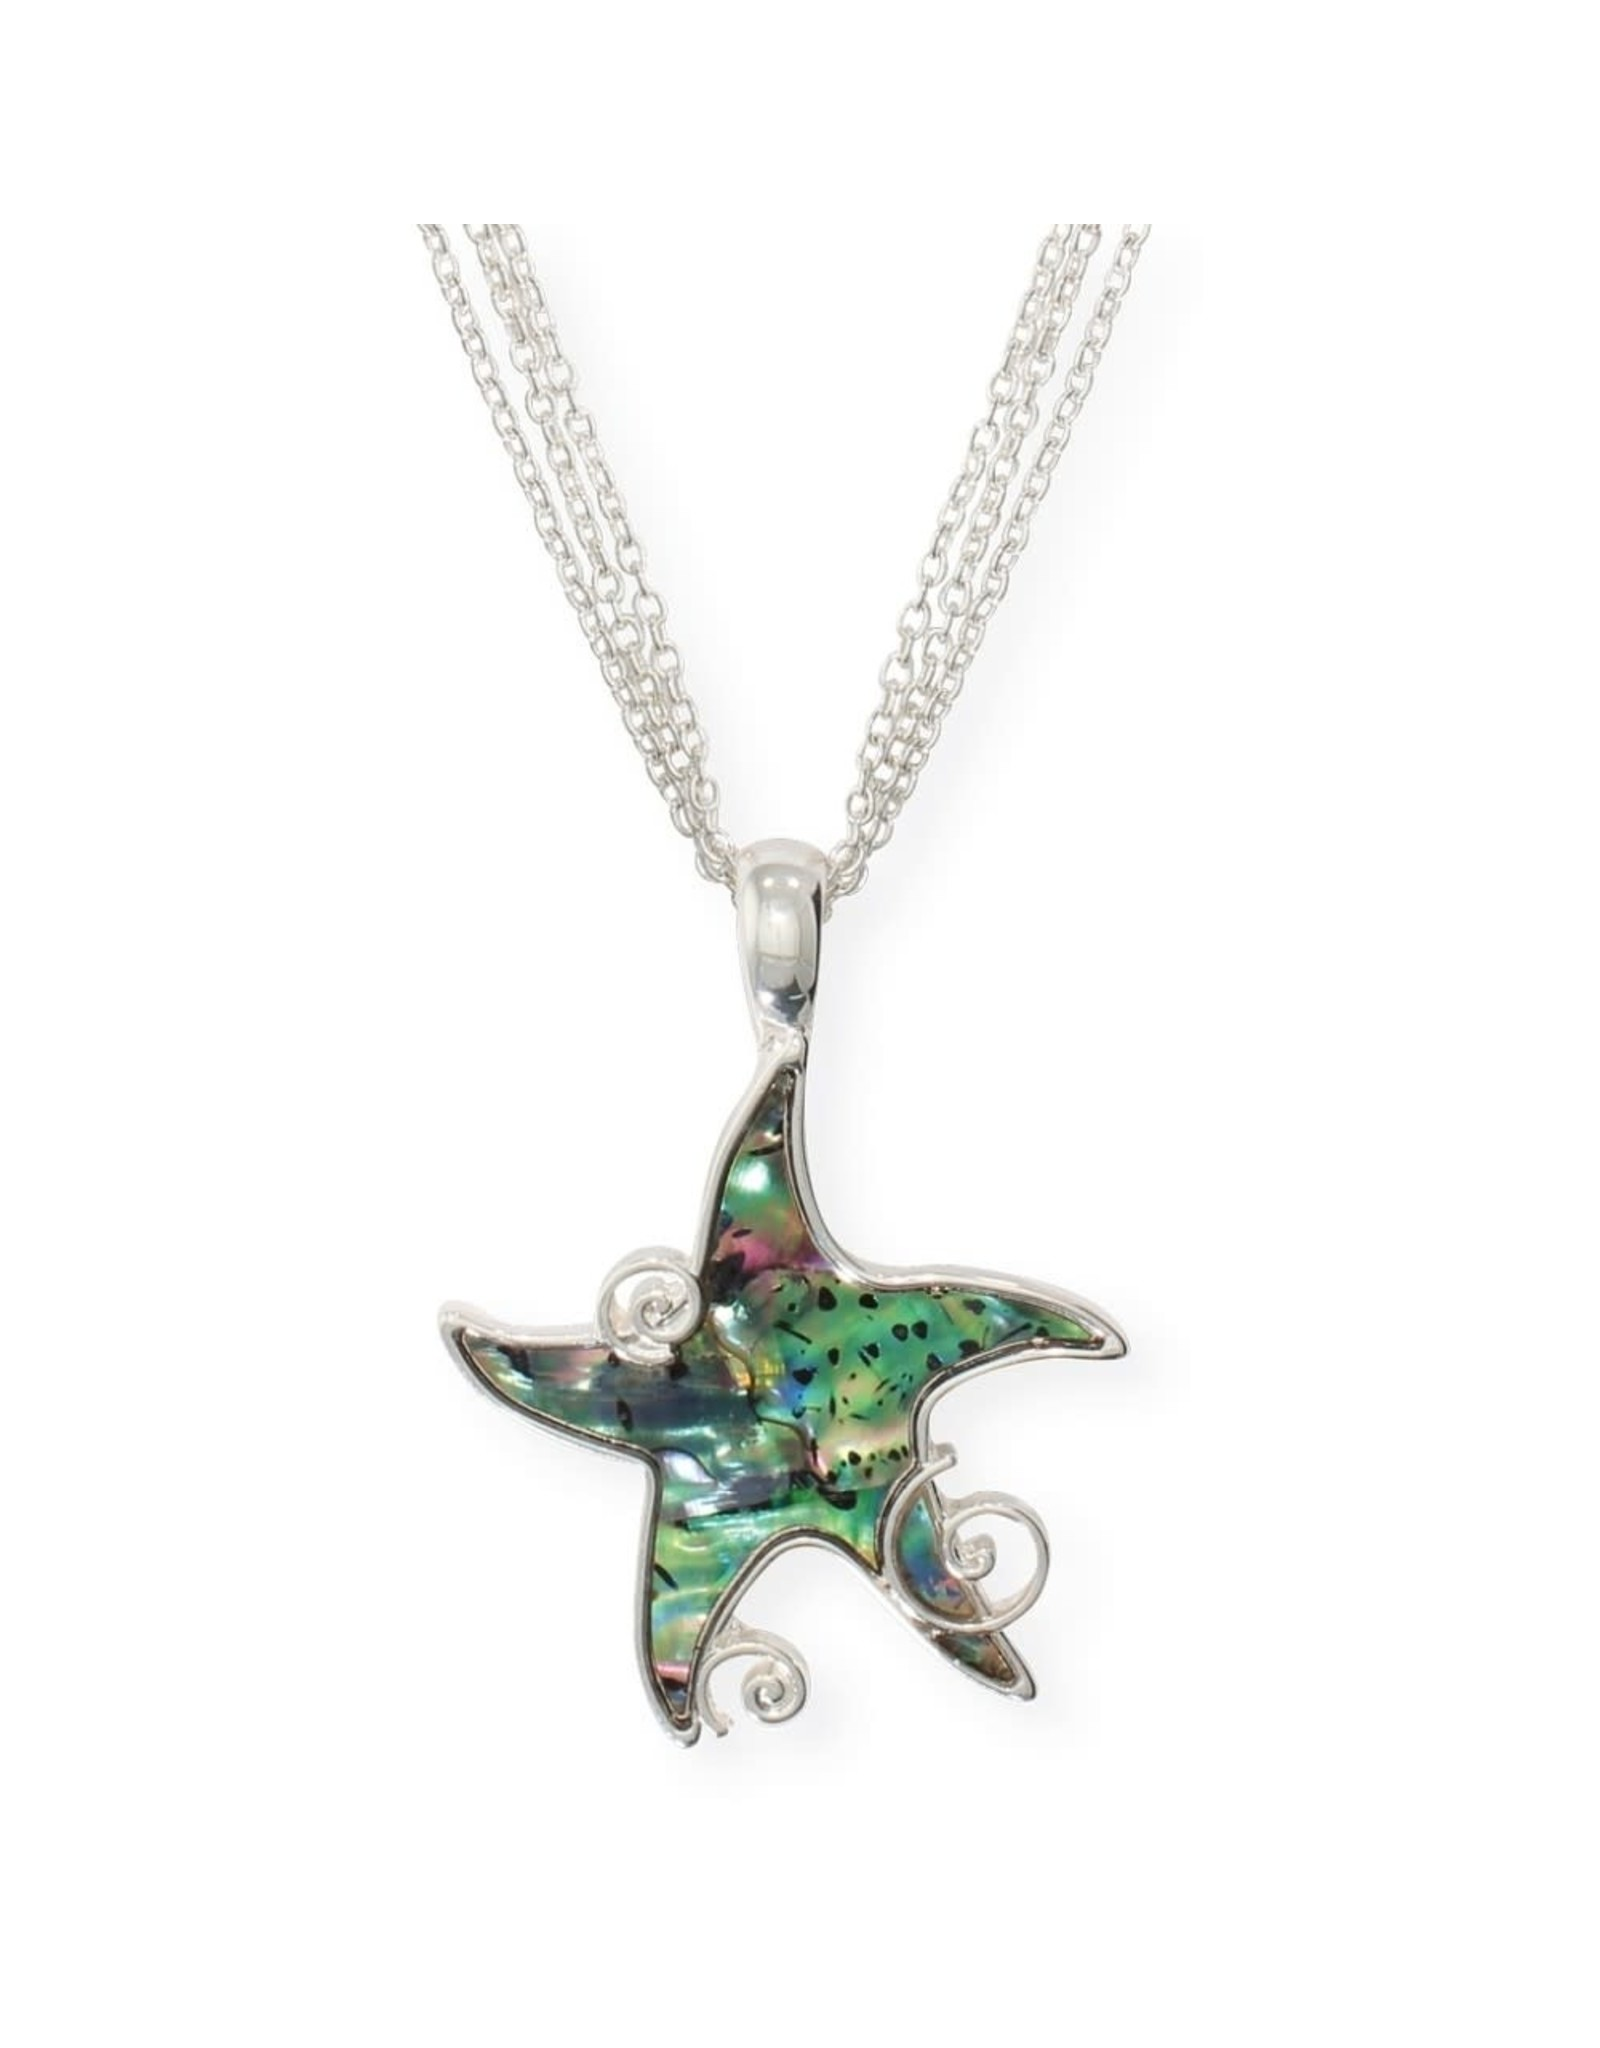 Periwinkle by Barlow 17 Inch Abalone Inlay Starfish Necklace